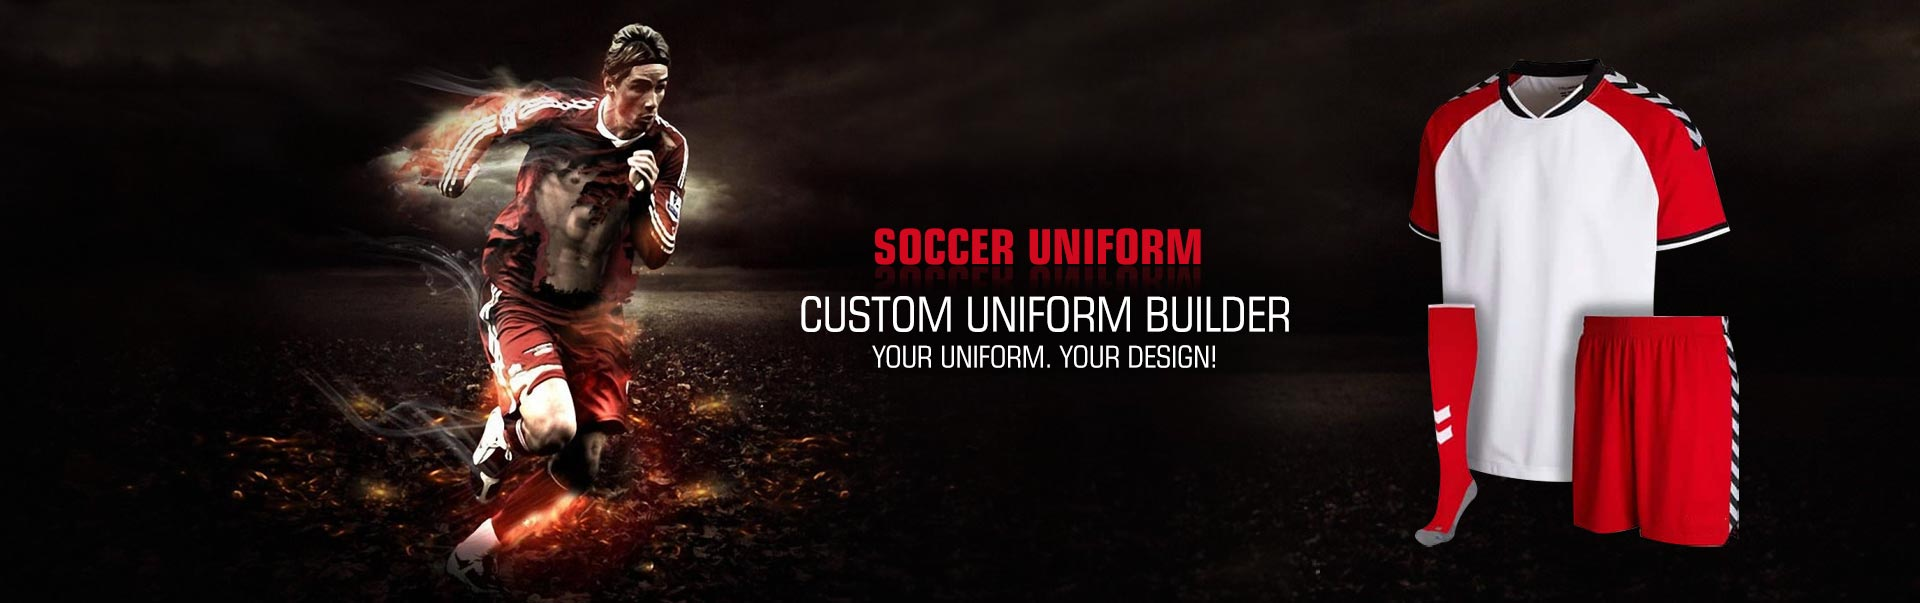 Soccer Uniform Wholesaler, Suppliers in Bellevue